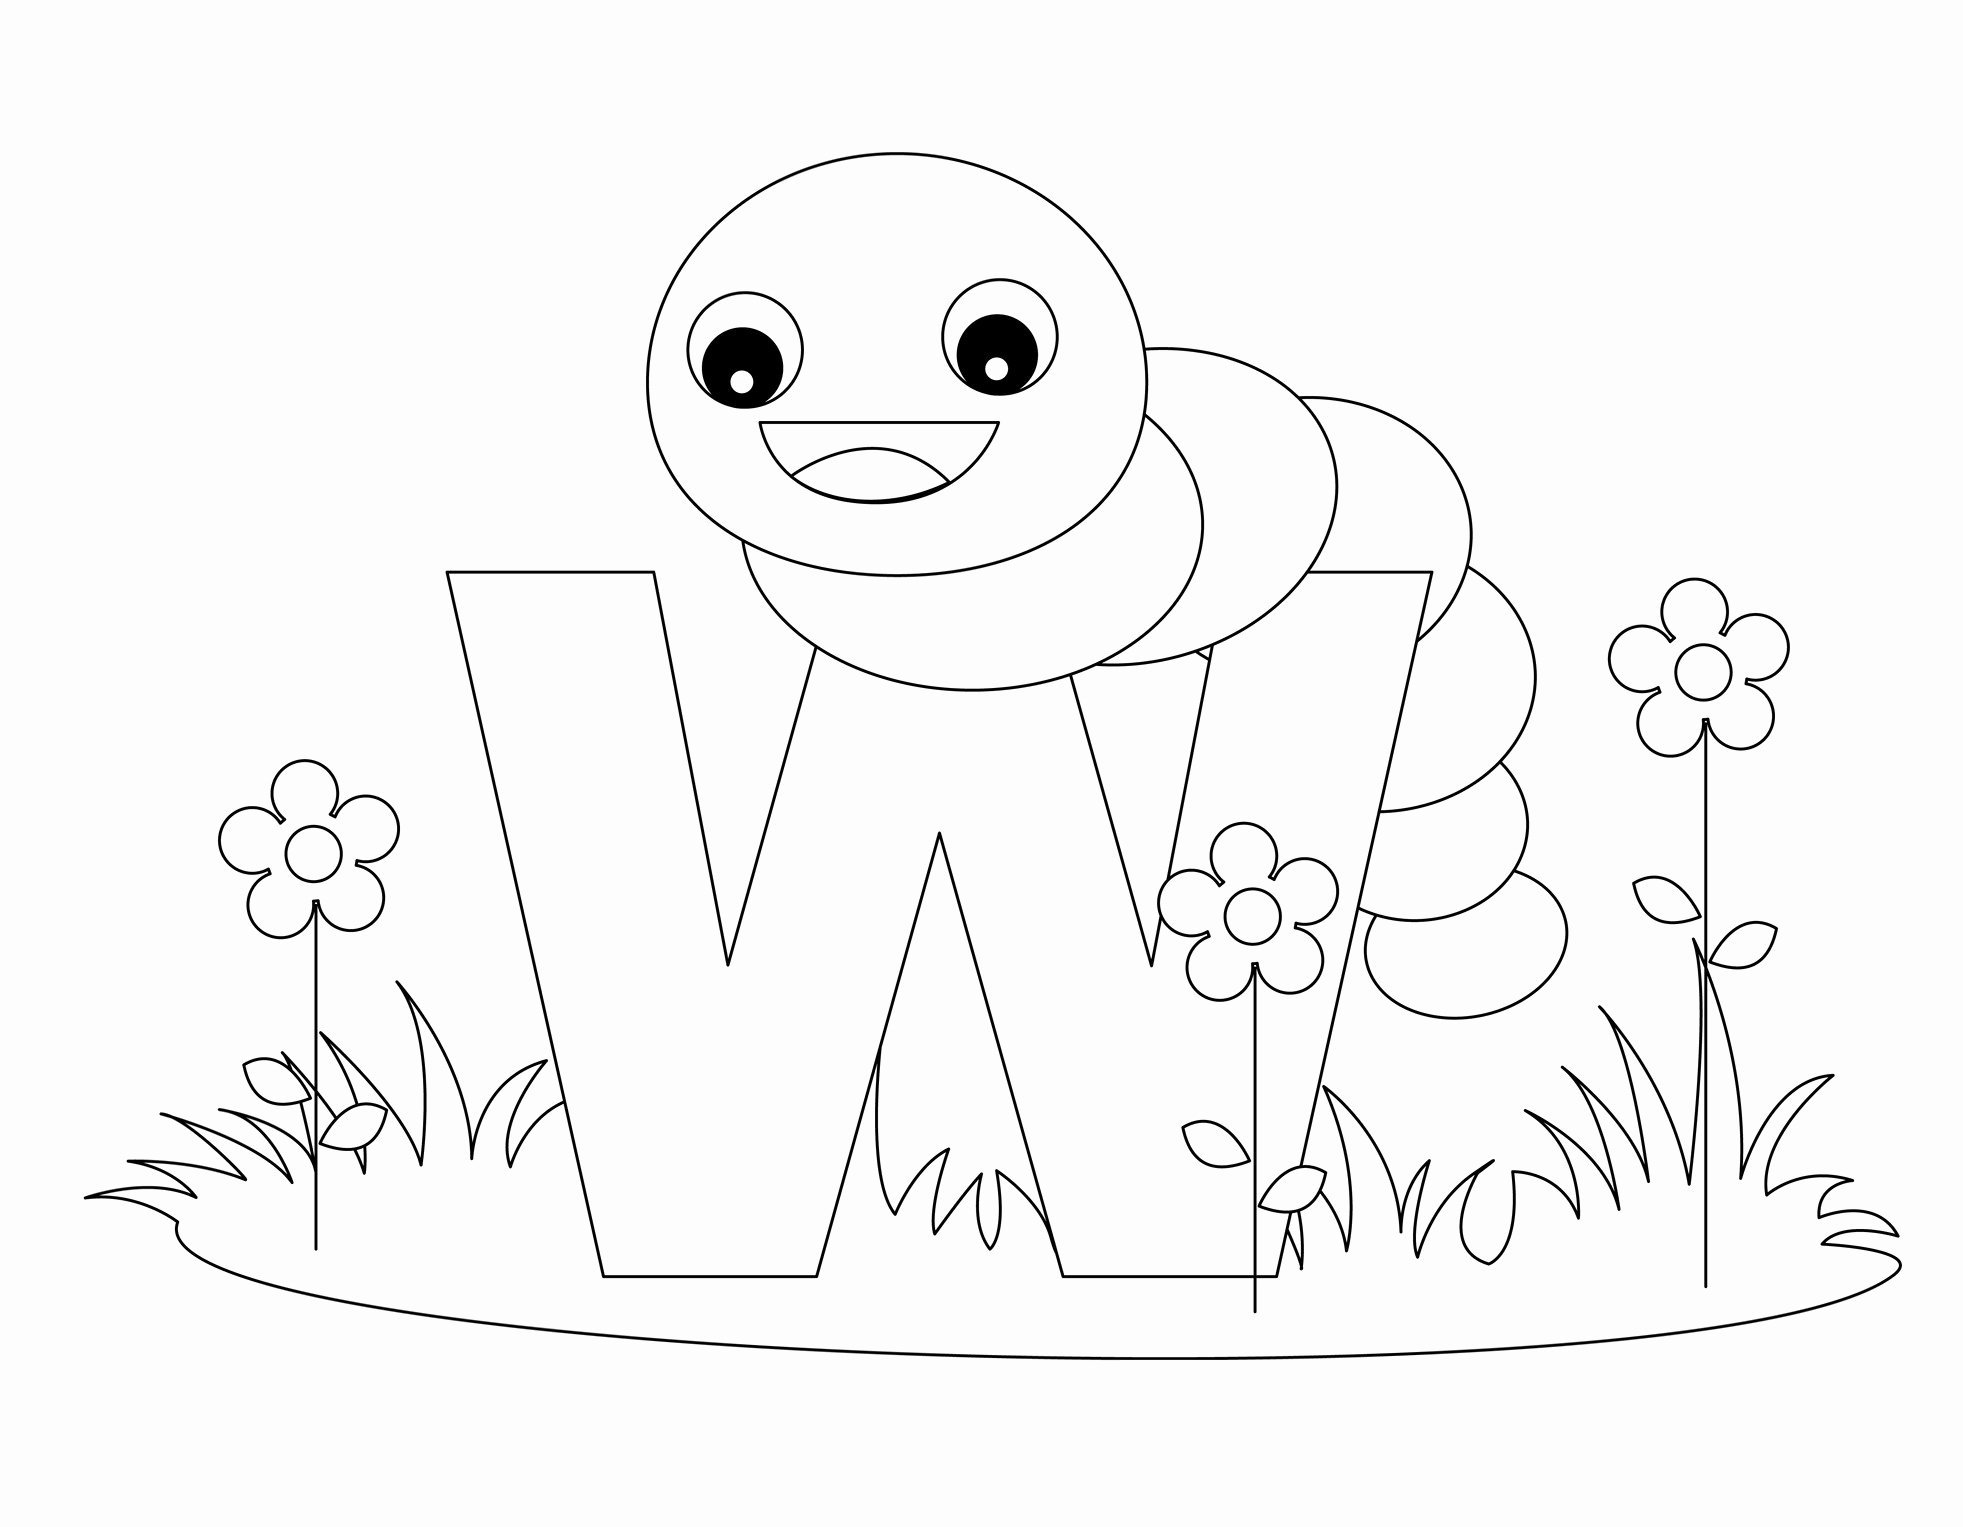 Printable Alphabet Letters Free Awesome Free Printable Alphabet Coloring Pages for Kids Best